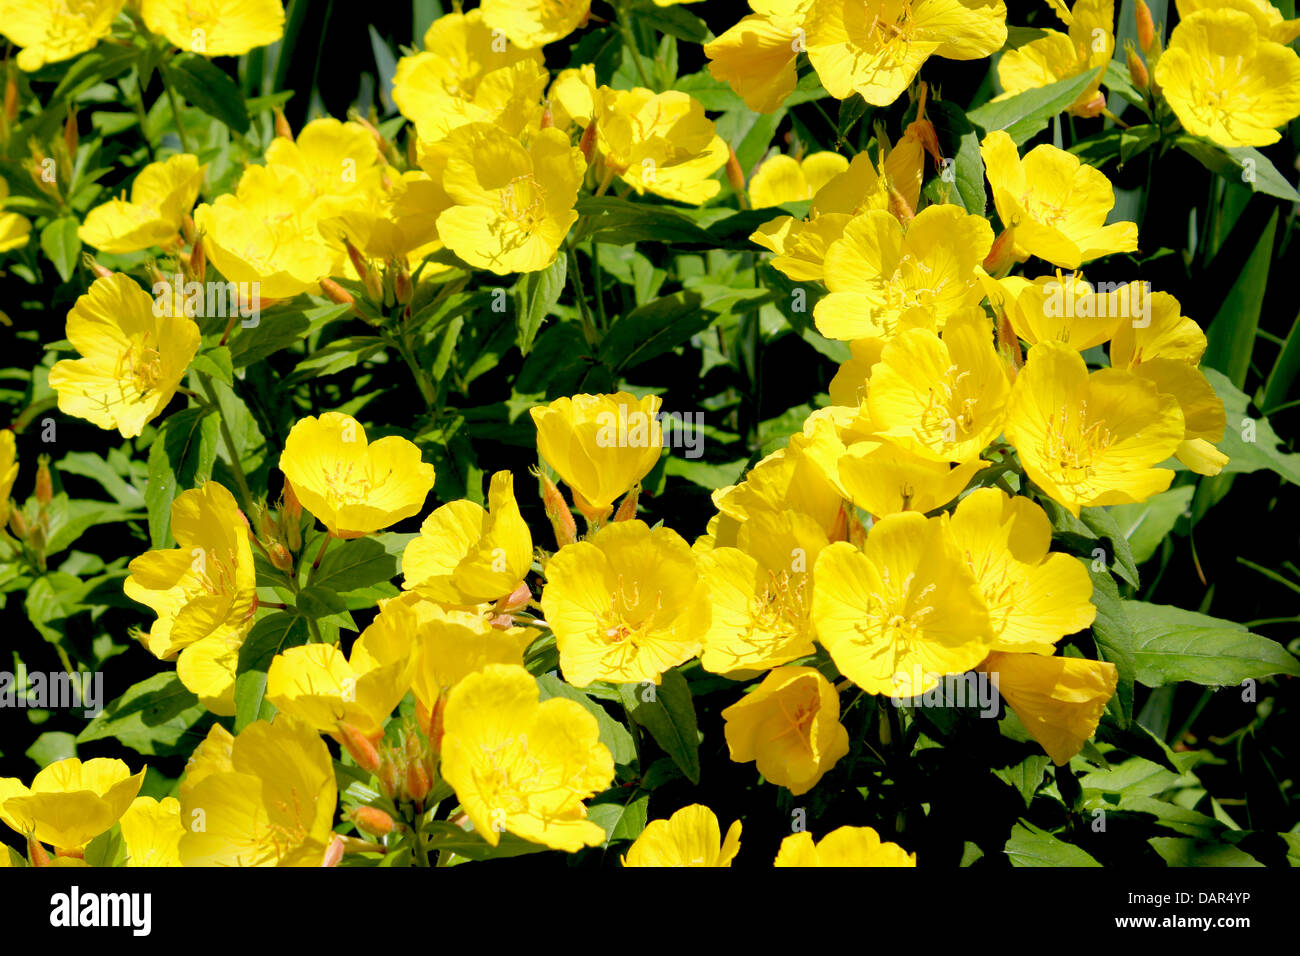 Ranunculus or buttercup flower is a perennial plant usually ranunculus or buttercup flower is a perennial plant usually flowering in the spring and sometimes in the summer mightylinksfo